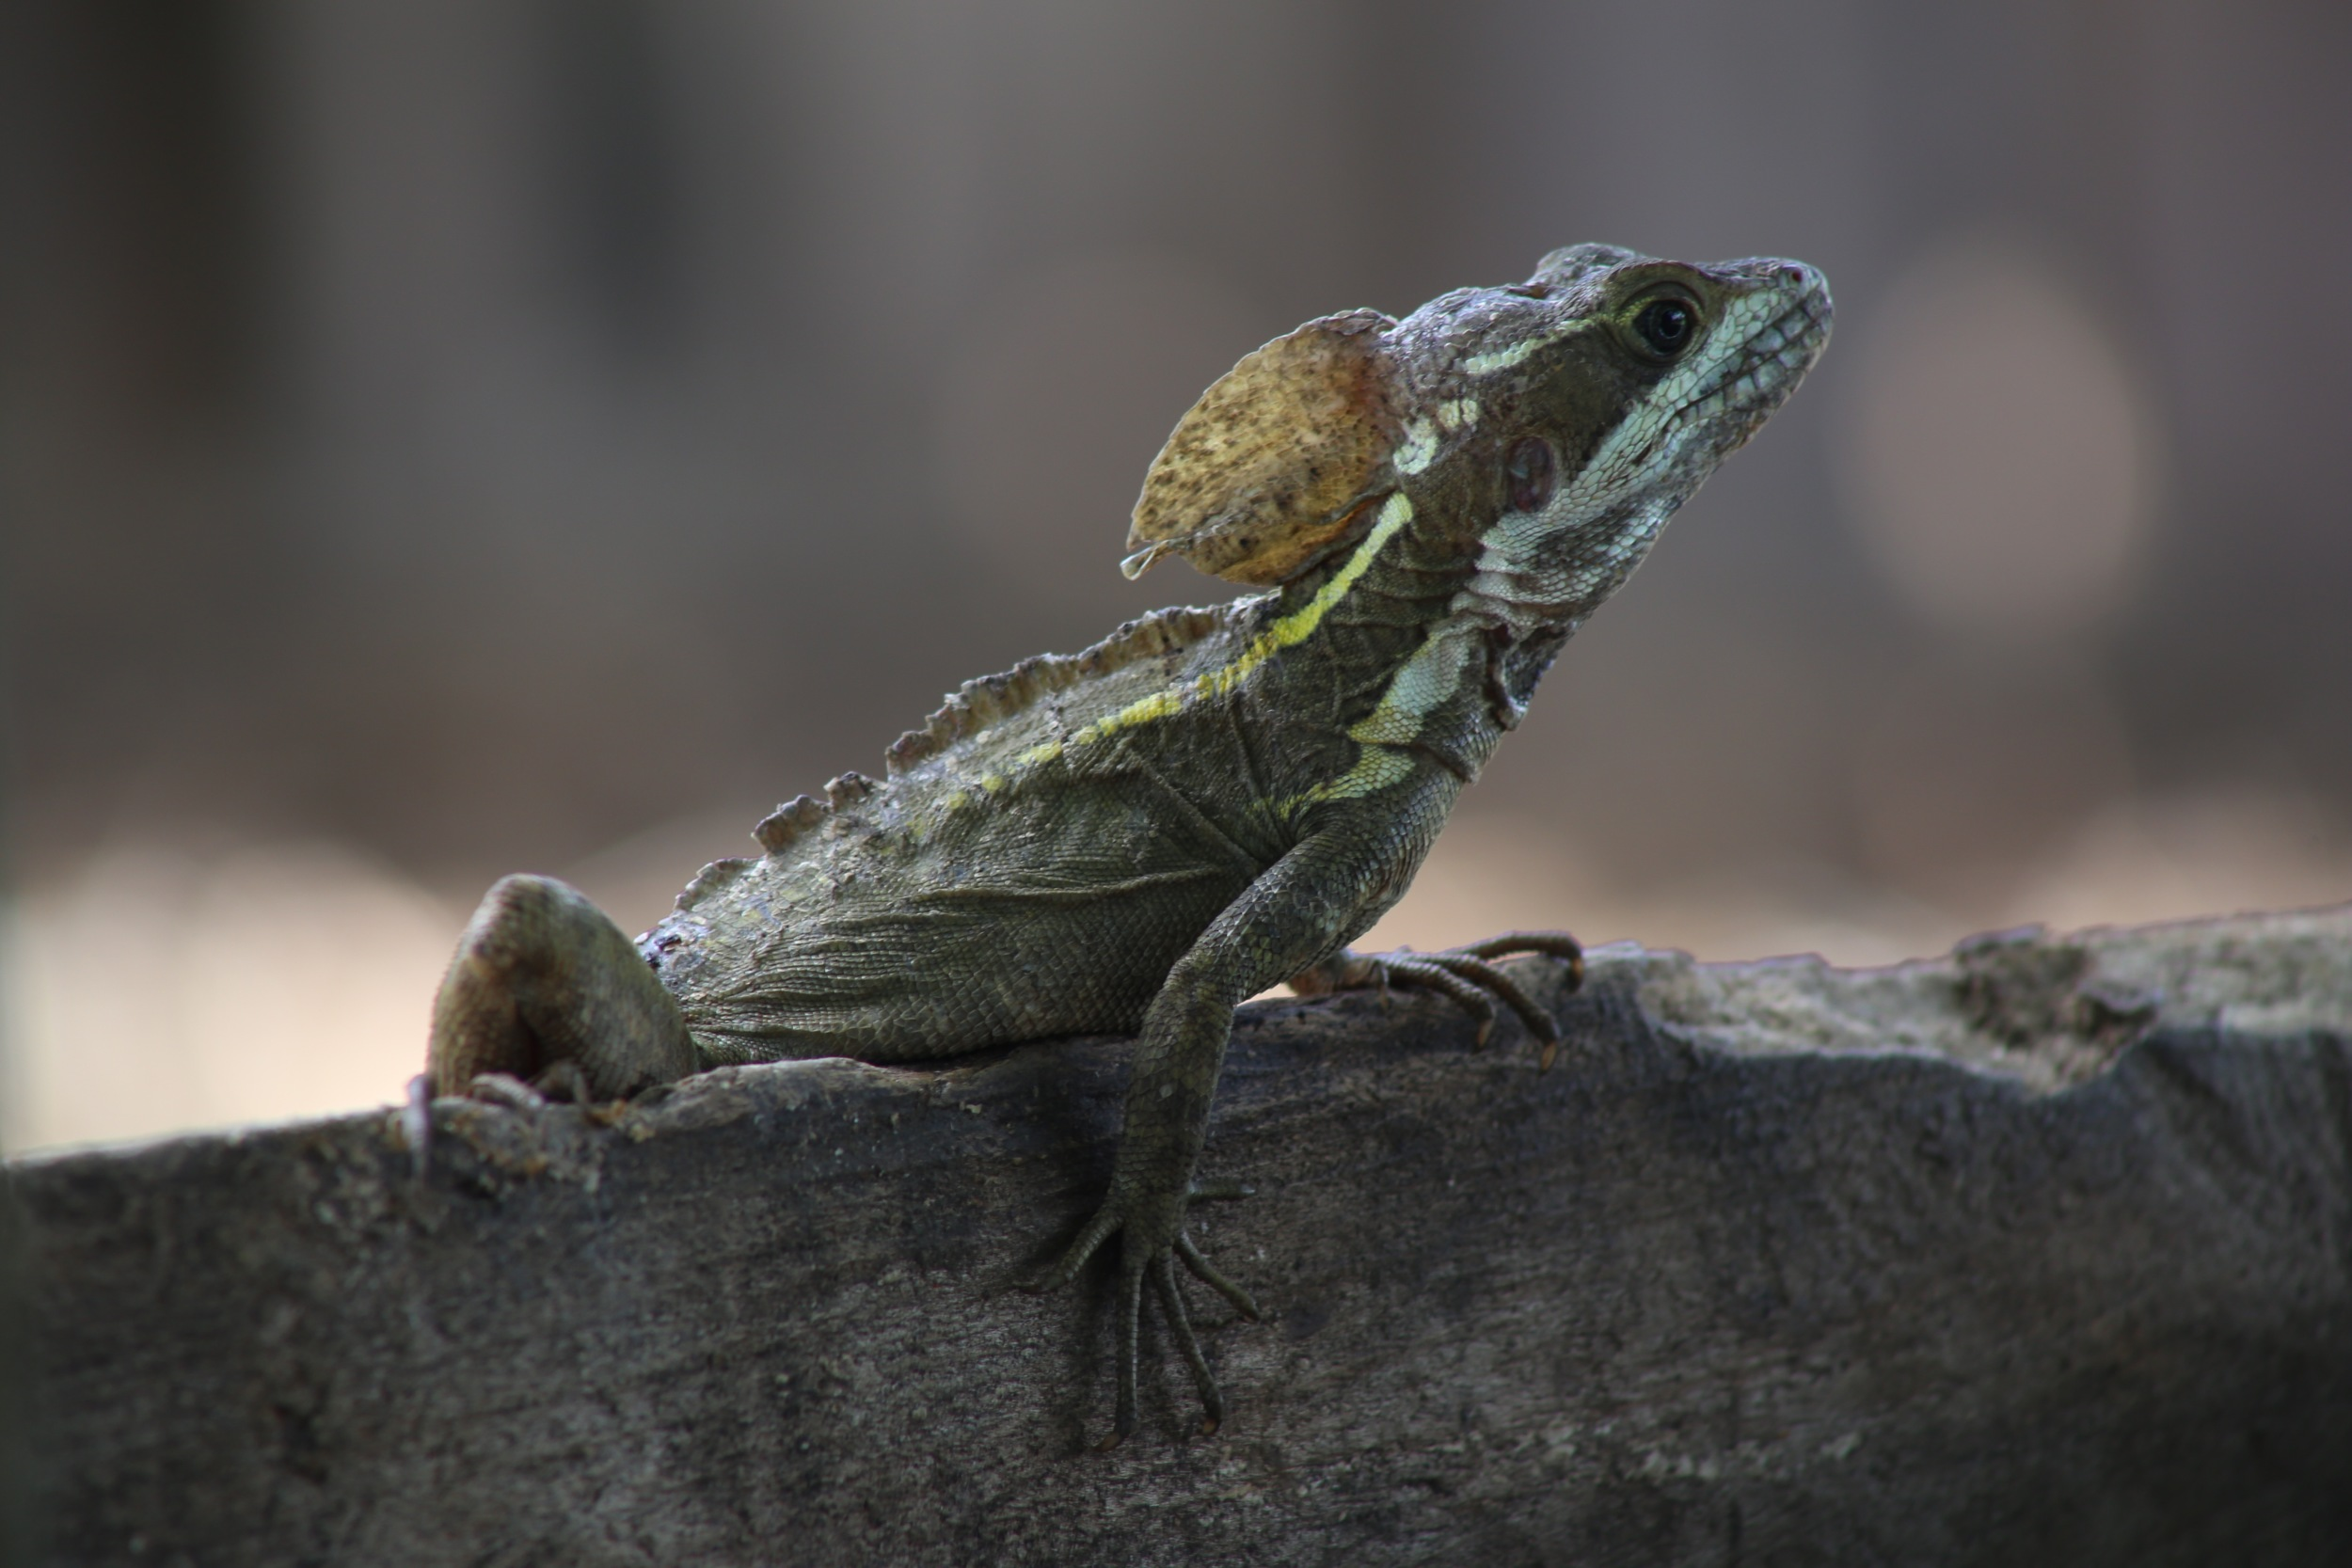 Seriously, they should call this the Babe Basilisk. Model material right here.